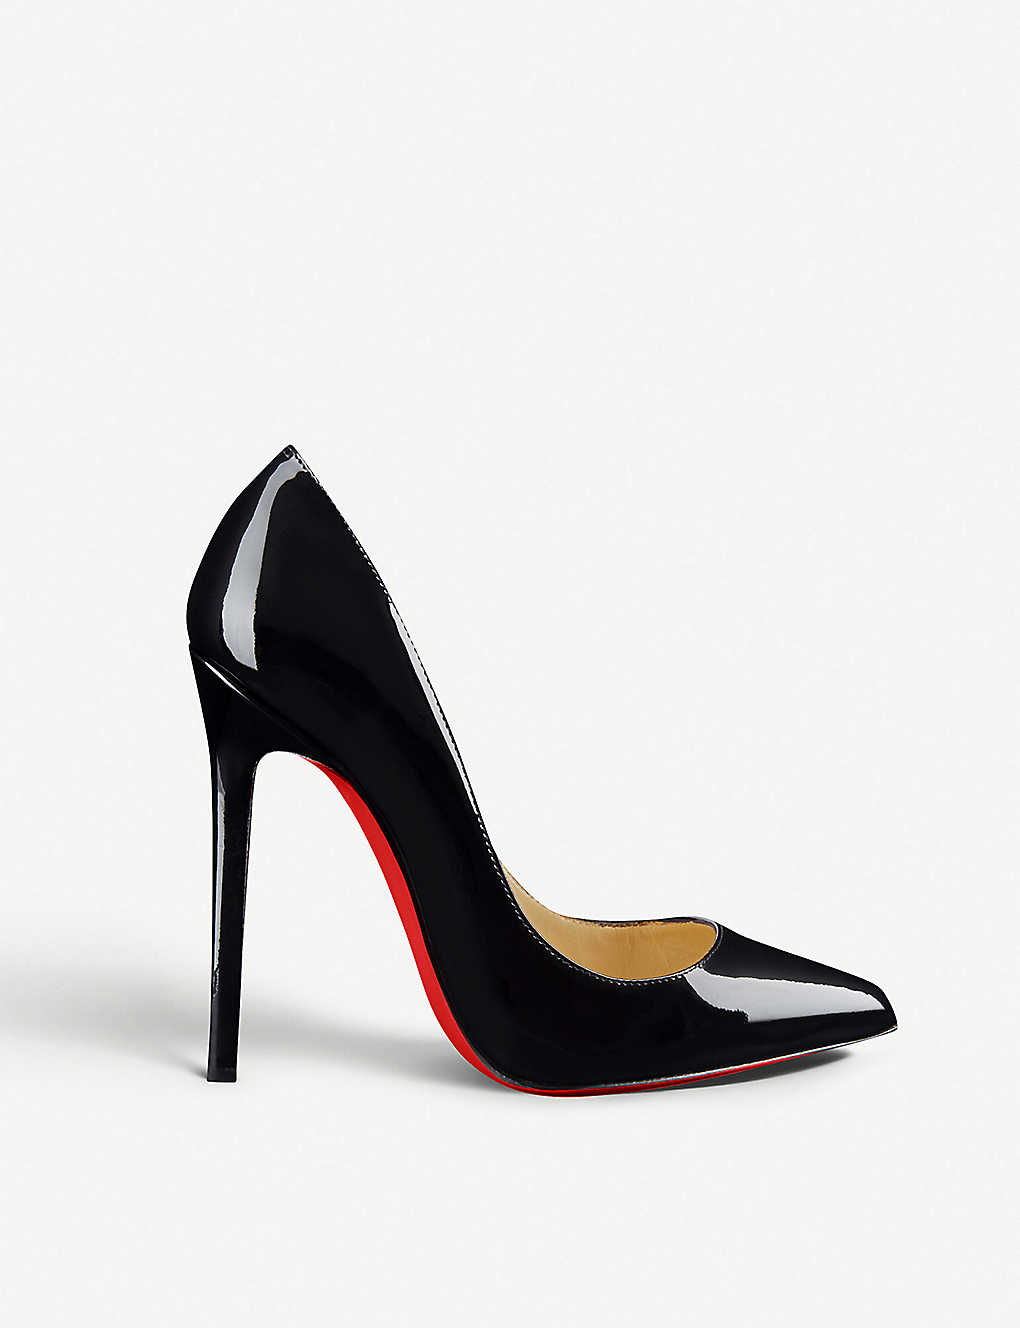 christian louboutin stilettos price